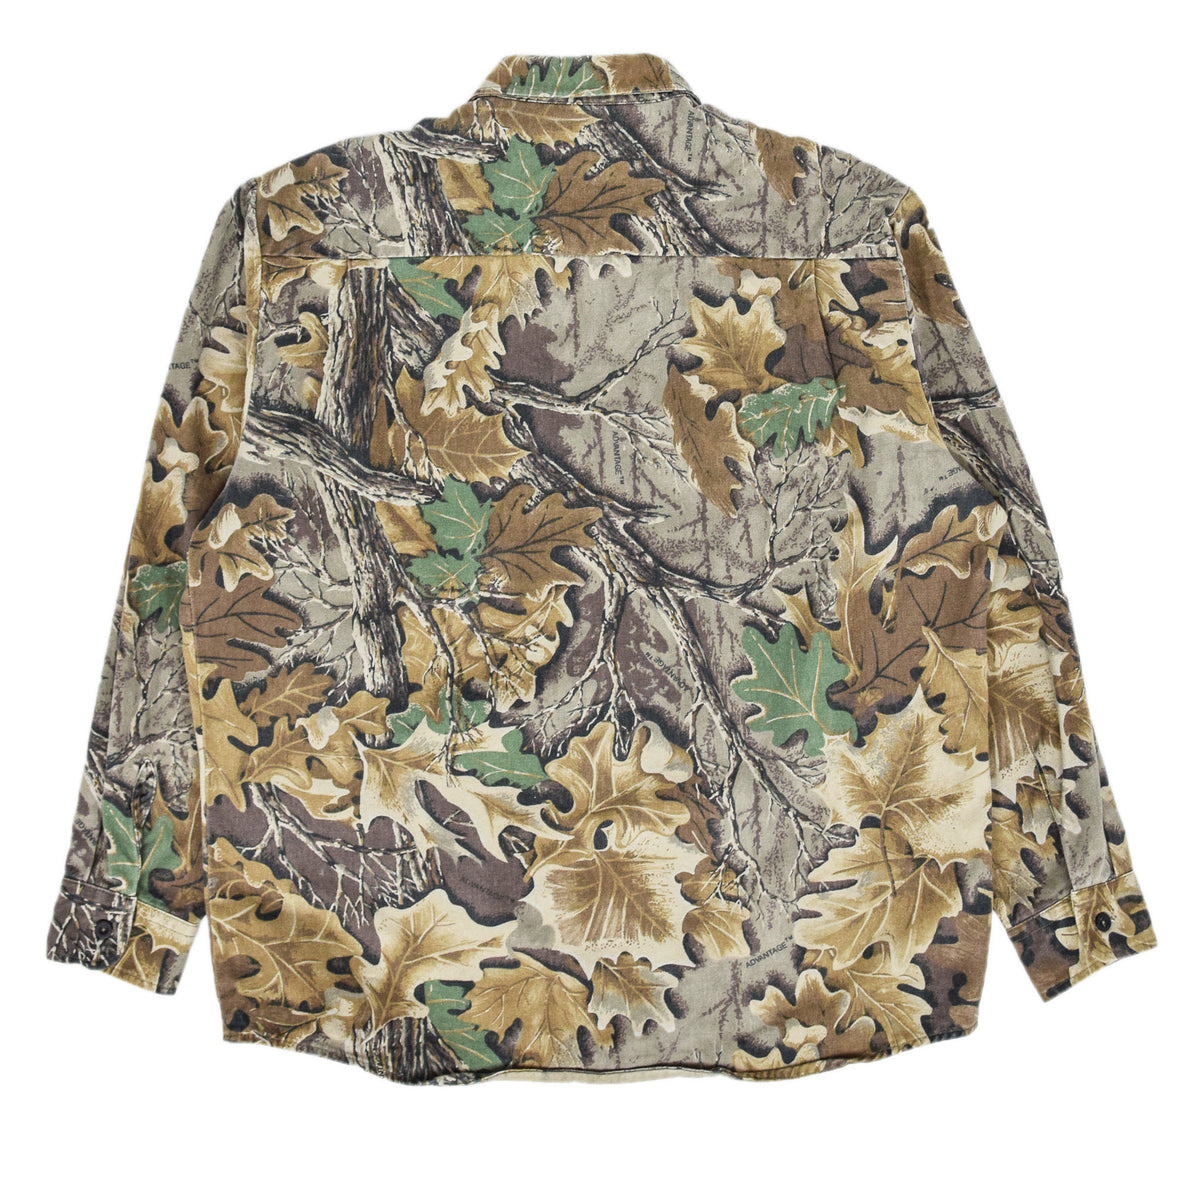 Vintage Wall's Leaf Camouflage Hunting Shooting Cotton Long Sleeve Shirt XL back